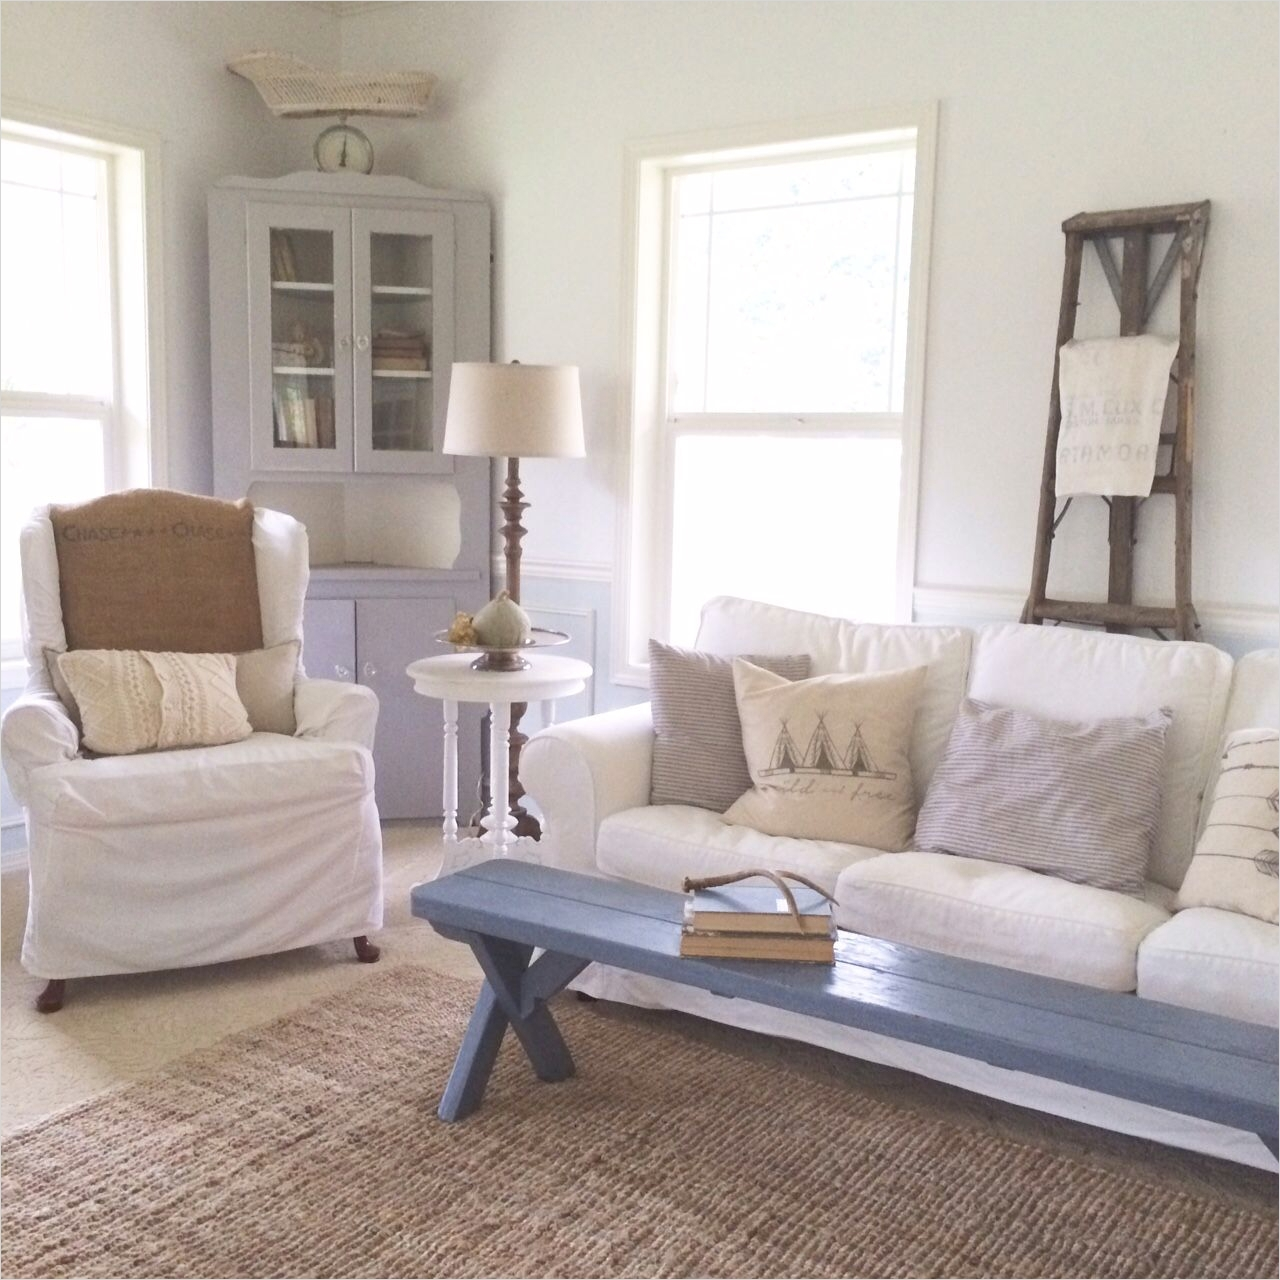 42 Cozy Country Farmhouse Living Room 36 A Blog About Farmhouse Style Design Country Living Home Decorating Family and Parties 7